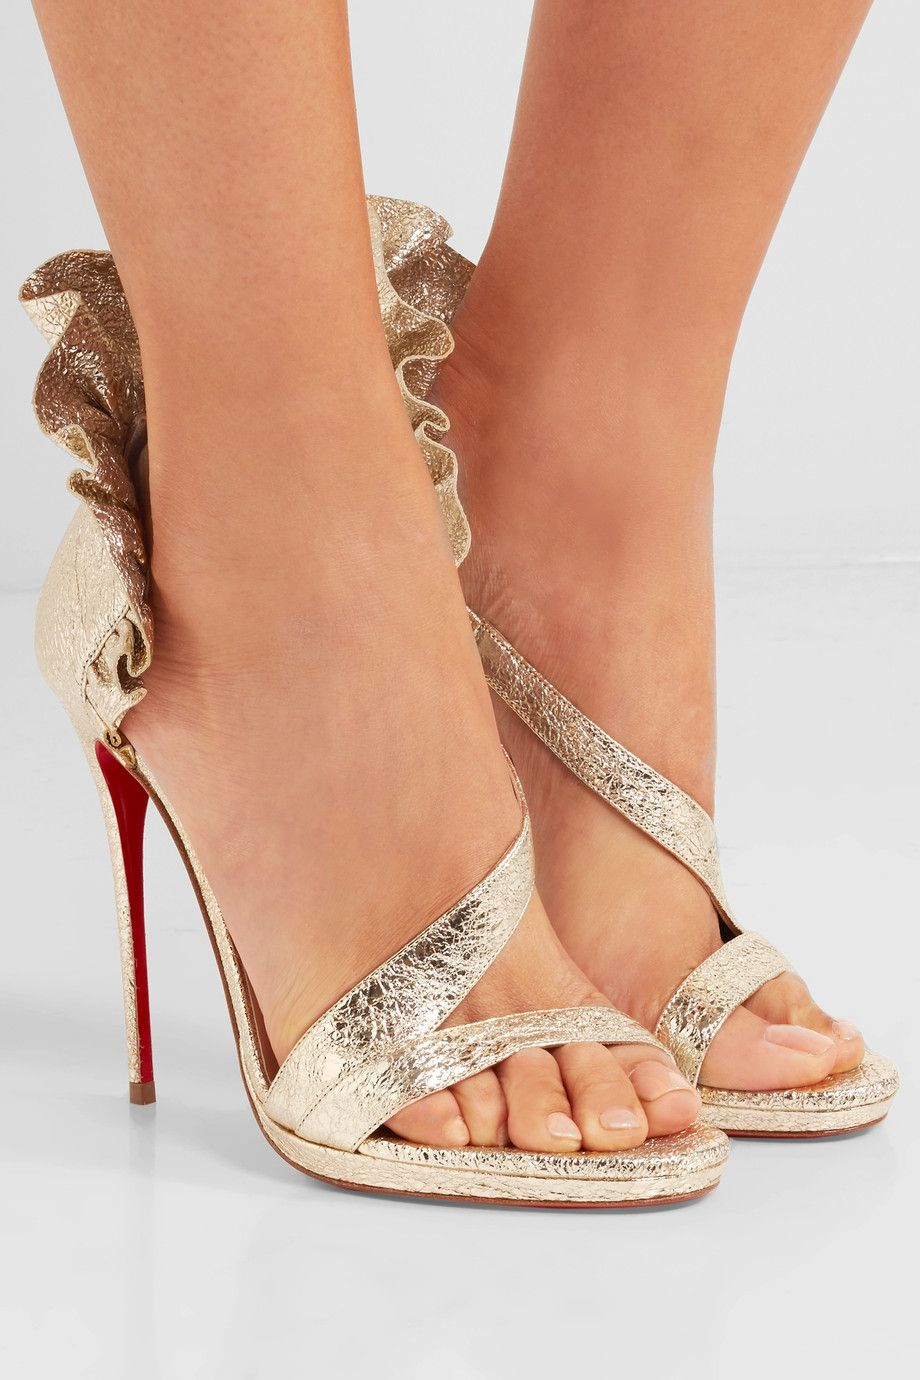 Quality Free Shipping Low Price Buy Cheap Cheapest Colankle 120 Ruffled Metallic Cracked-leather Sandals - Gold Christian Louboutin wqmdXgEZSx